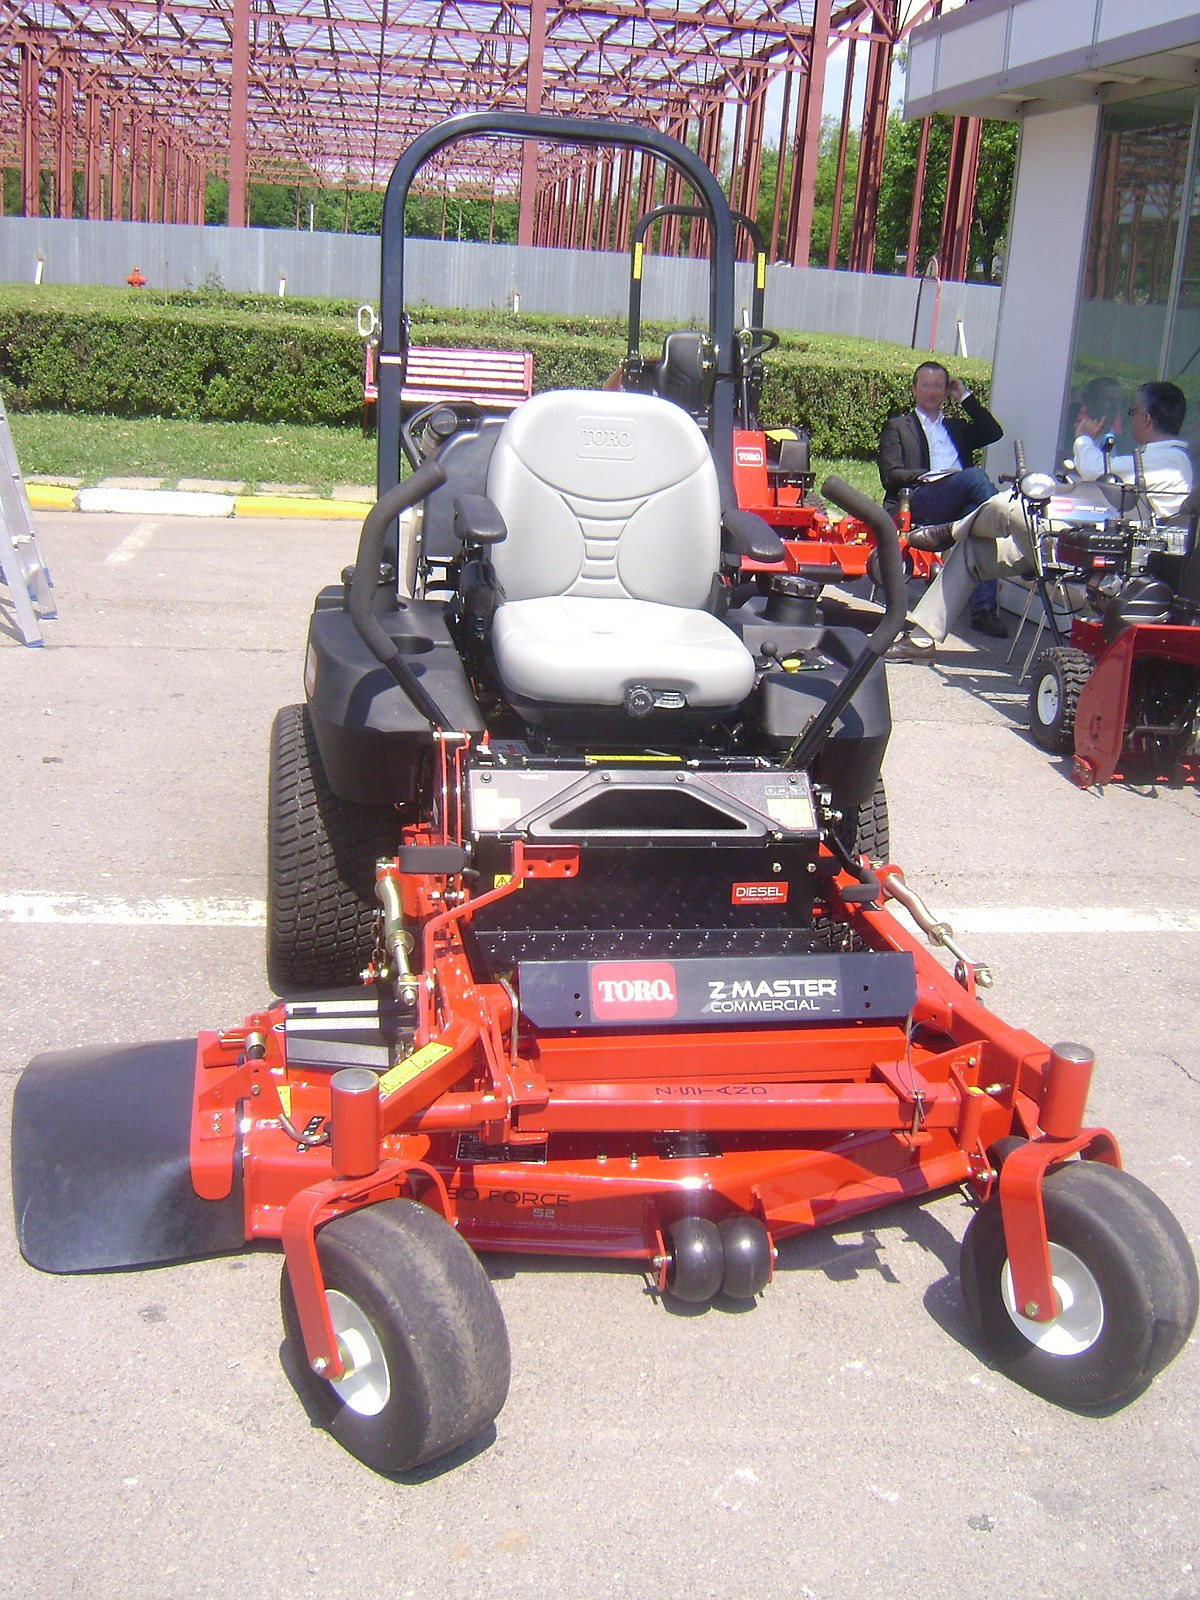 Zero-turn mower - Wikipedia